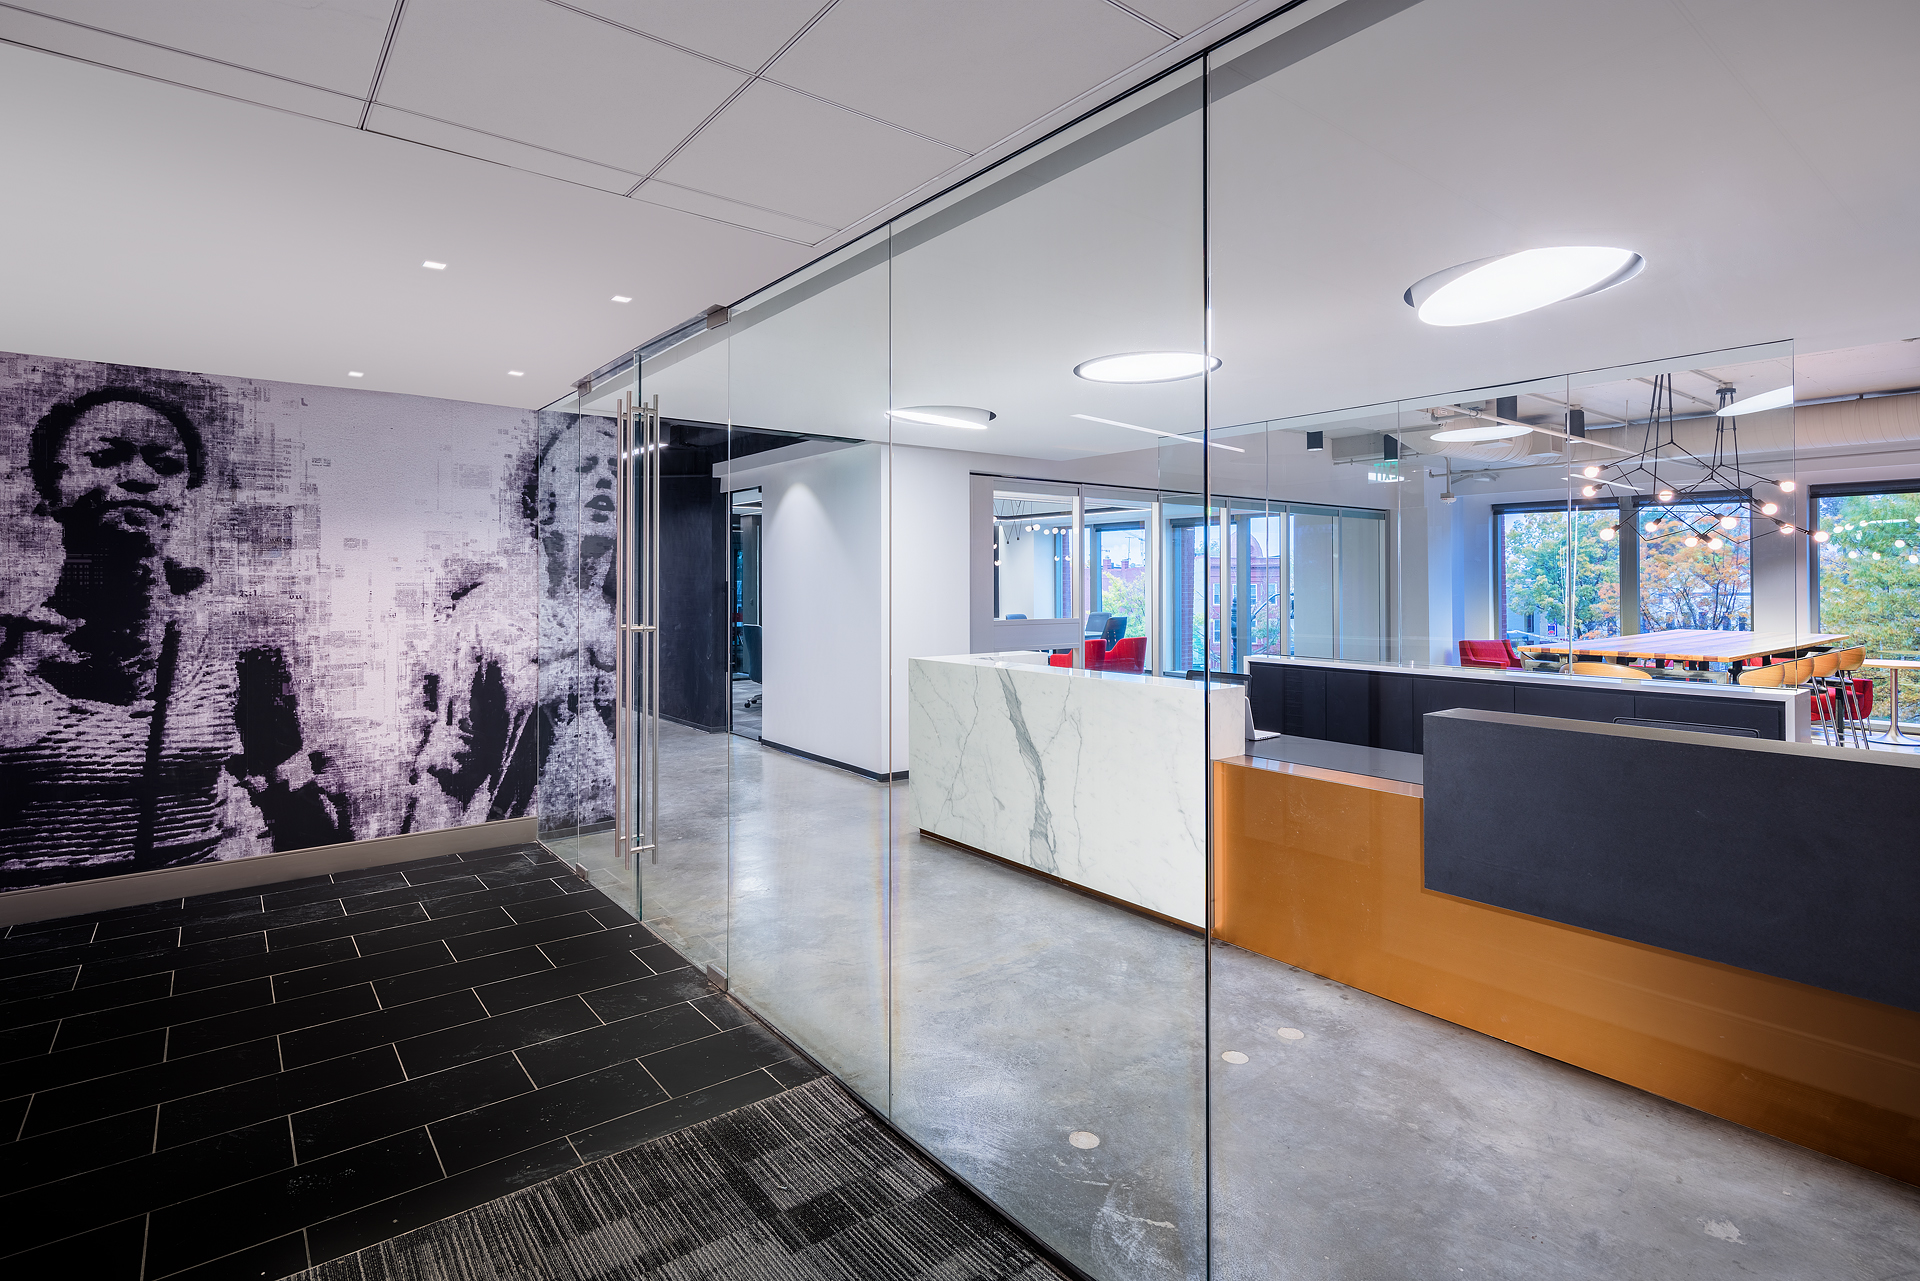 Washington, DC - Scope of ServicesProject ManagementRelocation ManagementProject Details 11,168 sf20 Employees Relocated Project TeamArchitect: CollectiveContractor: HITTFurniture: Washington WorkplaceDatacabling: Henkels & McCoyMEP Engineer: AspireMover: Hilldrup